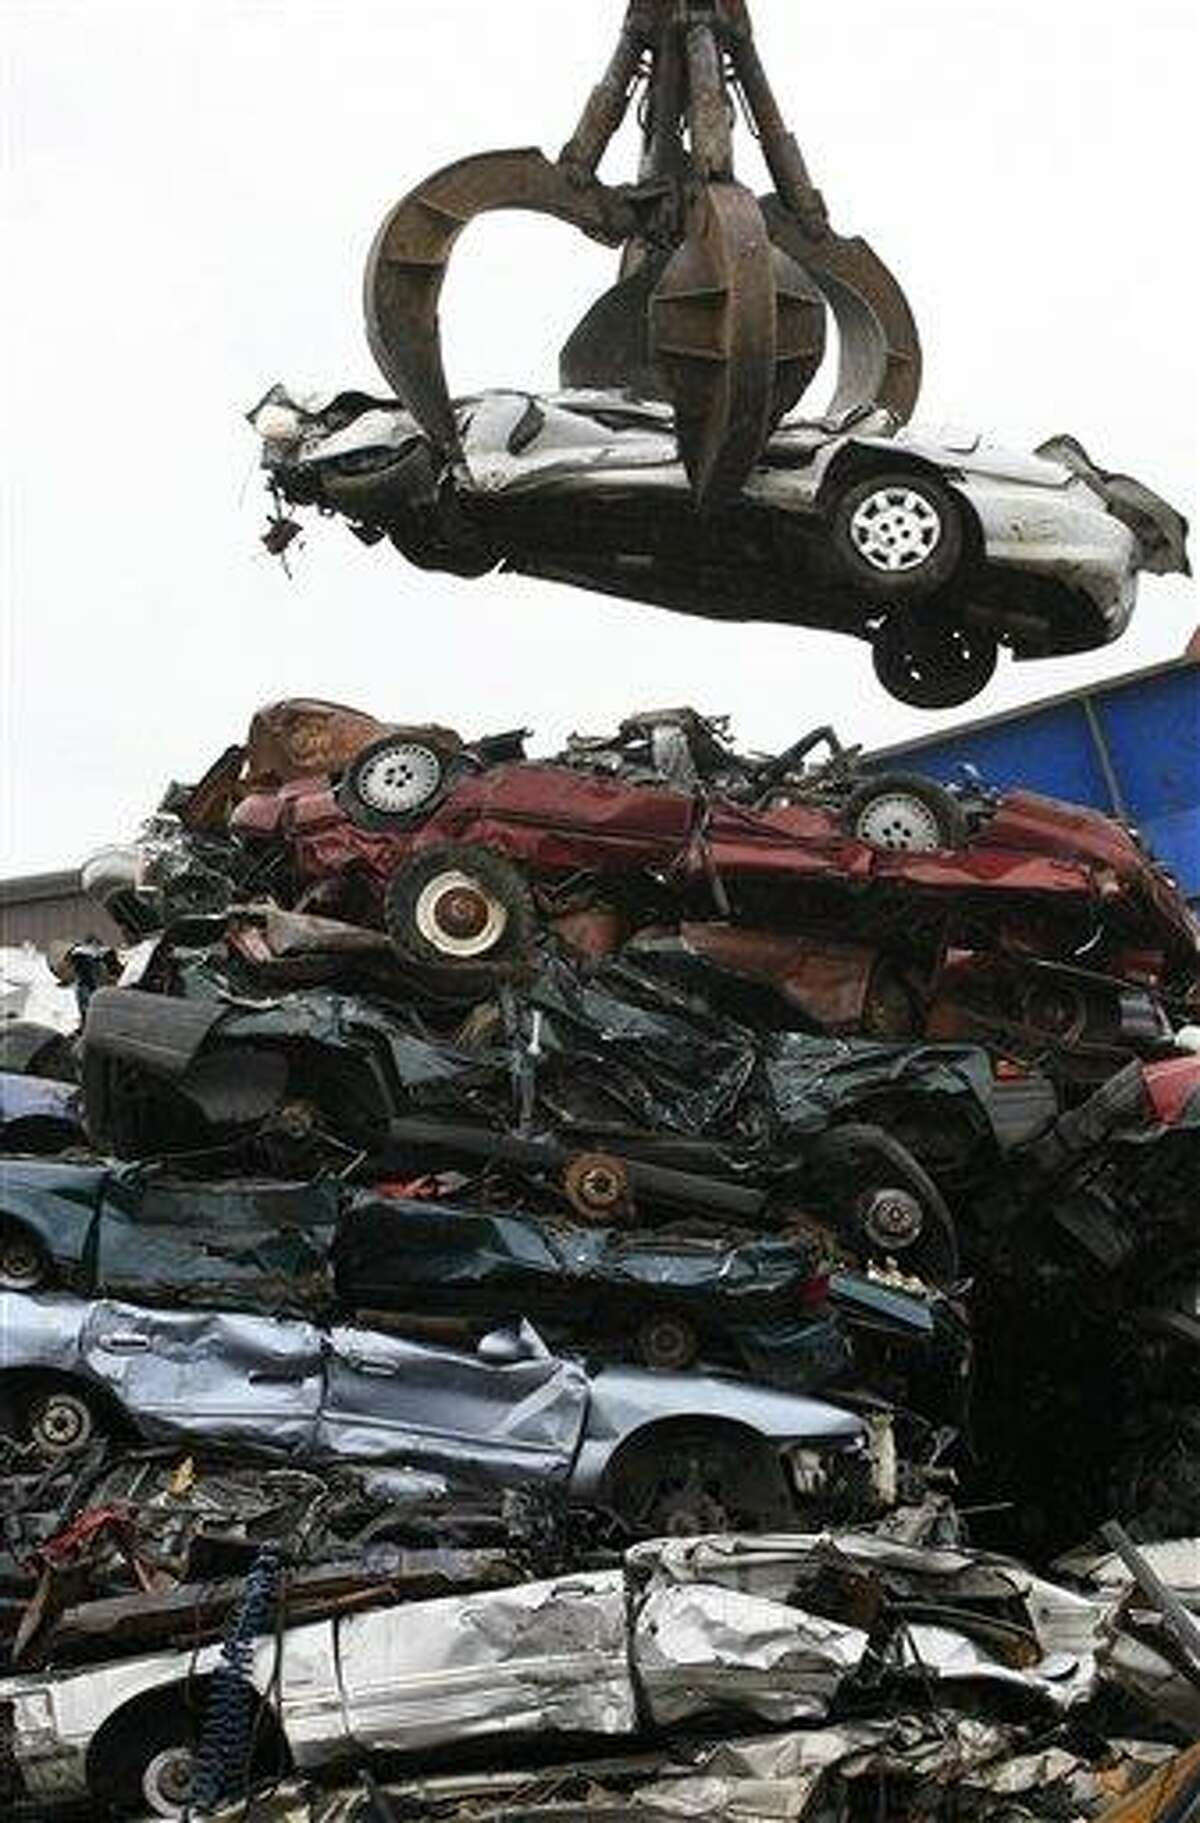 A crane lifts a flattened car from a stack of similar vehicles to a shredder at Gershow Recycling Corp. in Medford, N.Y., Thursday, Aug. 6, 2009. Many of the scrapped vehicles are part of the